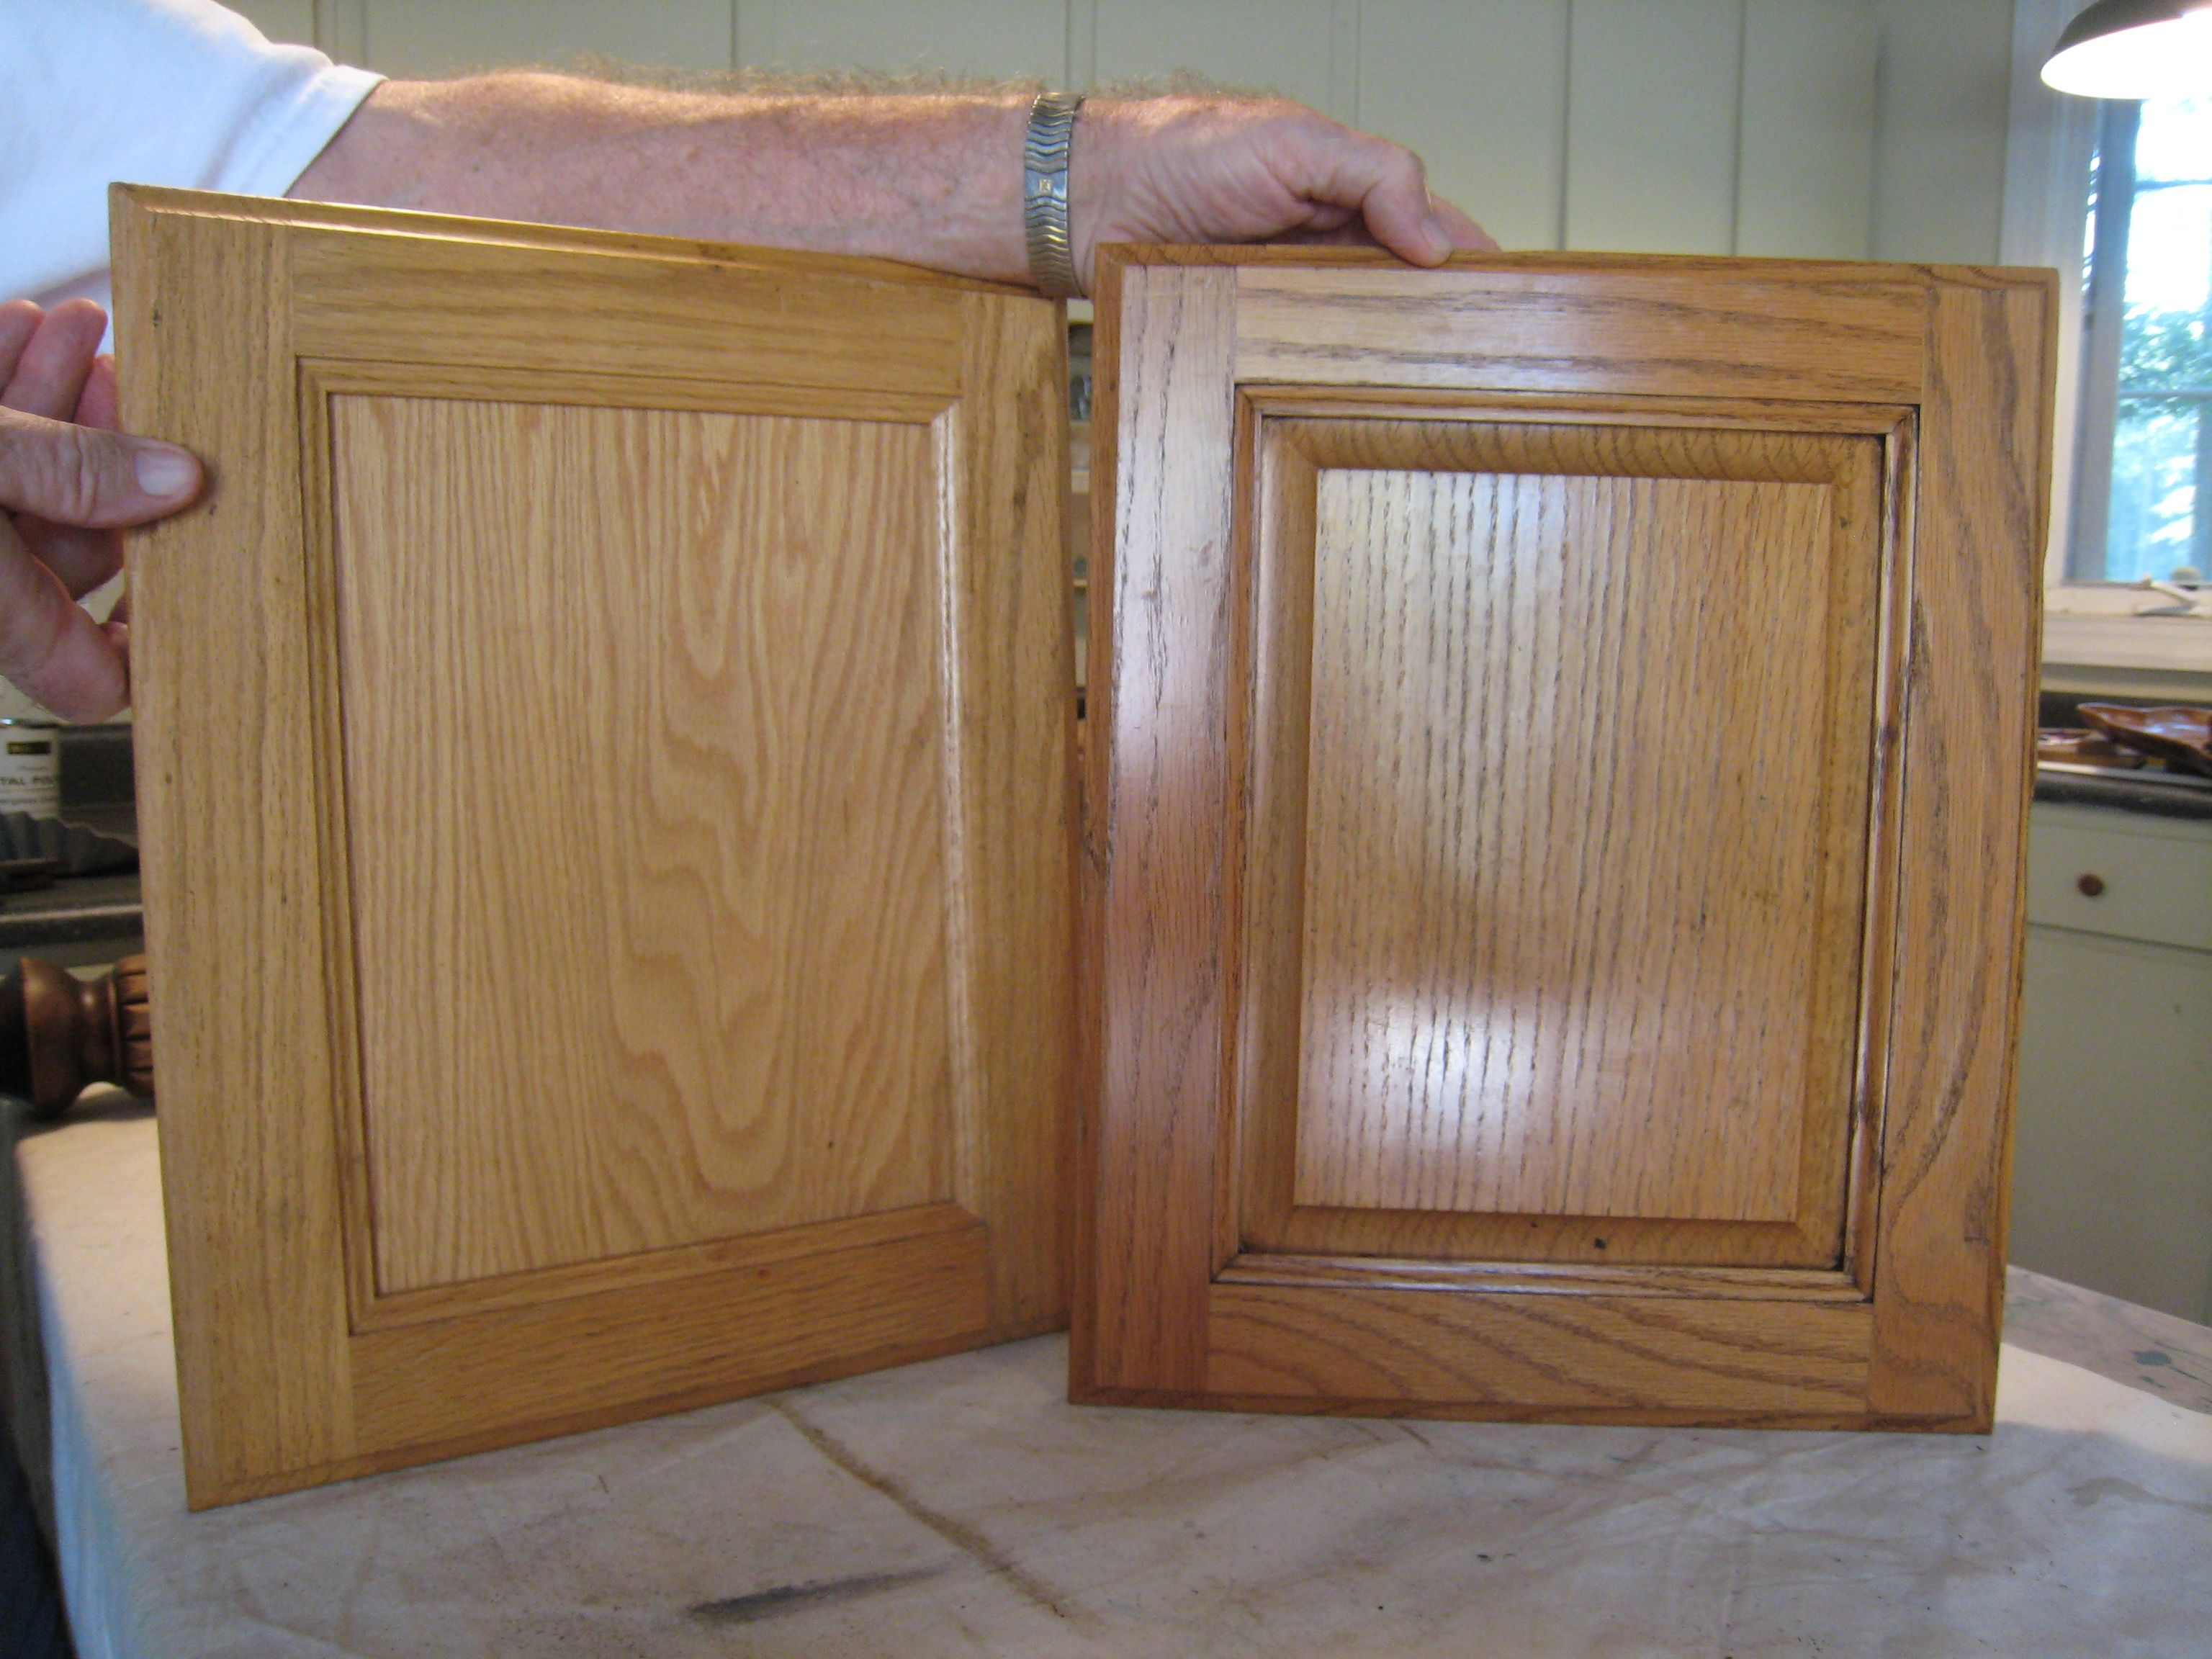 Liming Wax Kitchen Cabinets Kitchen Cabinets Cost Of Kitchen Cabinets Update Kitchen Cabinets